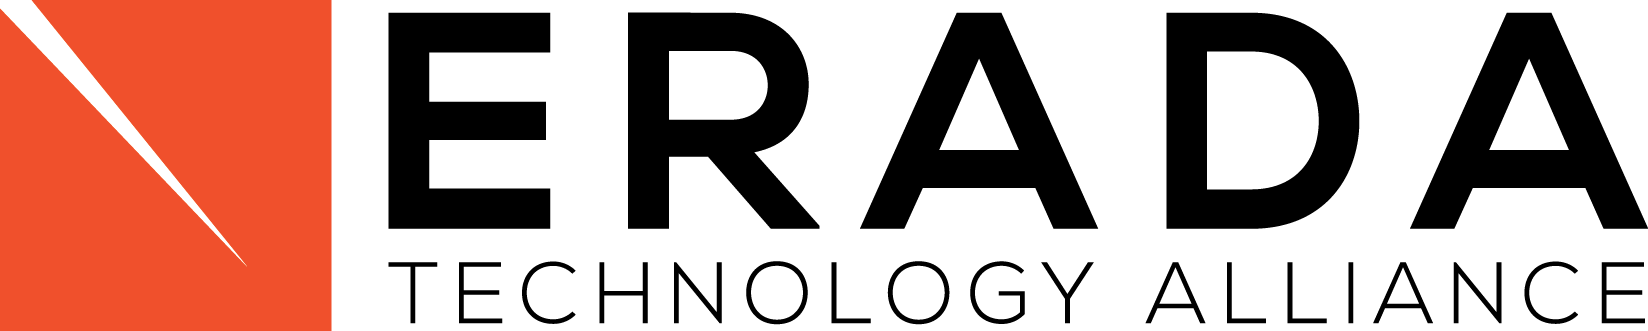 ERADA Technology Alliance